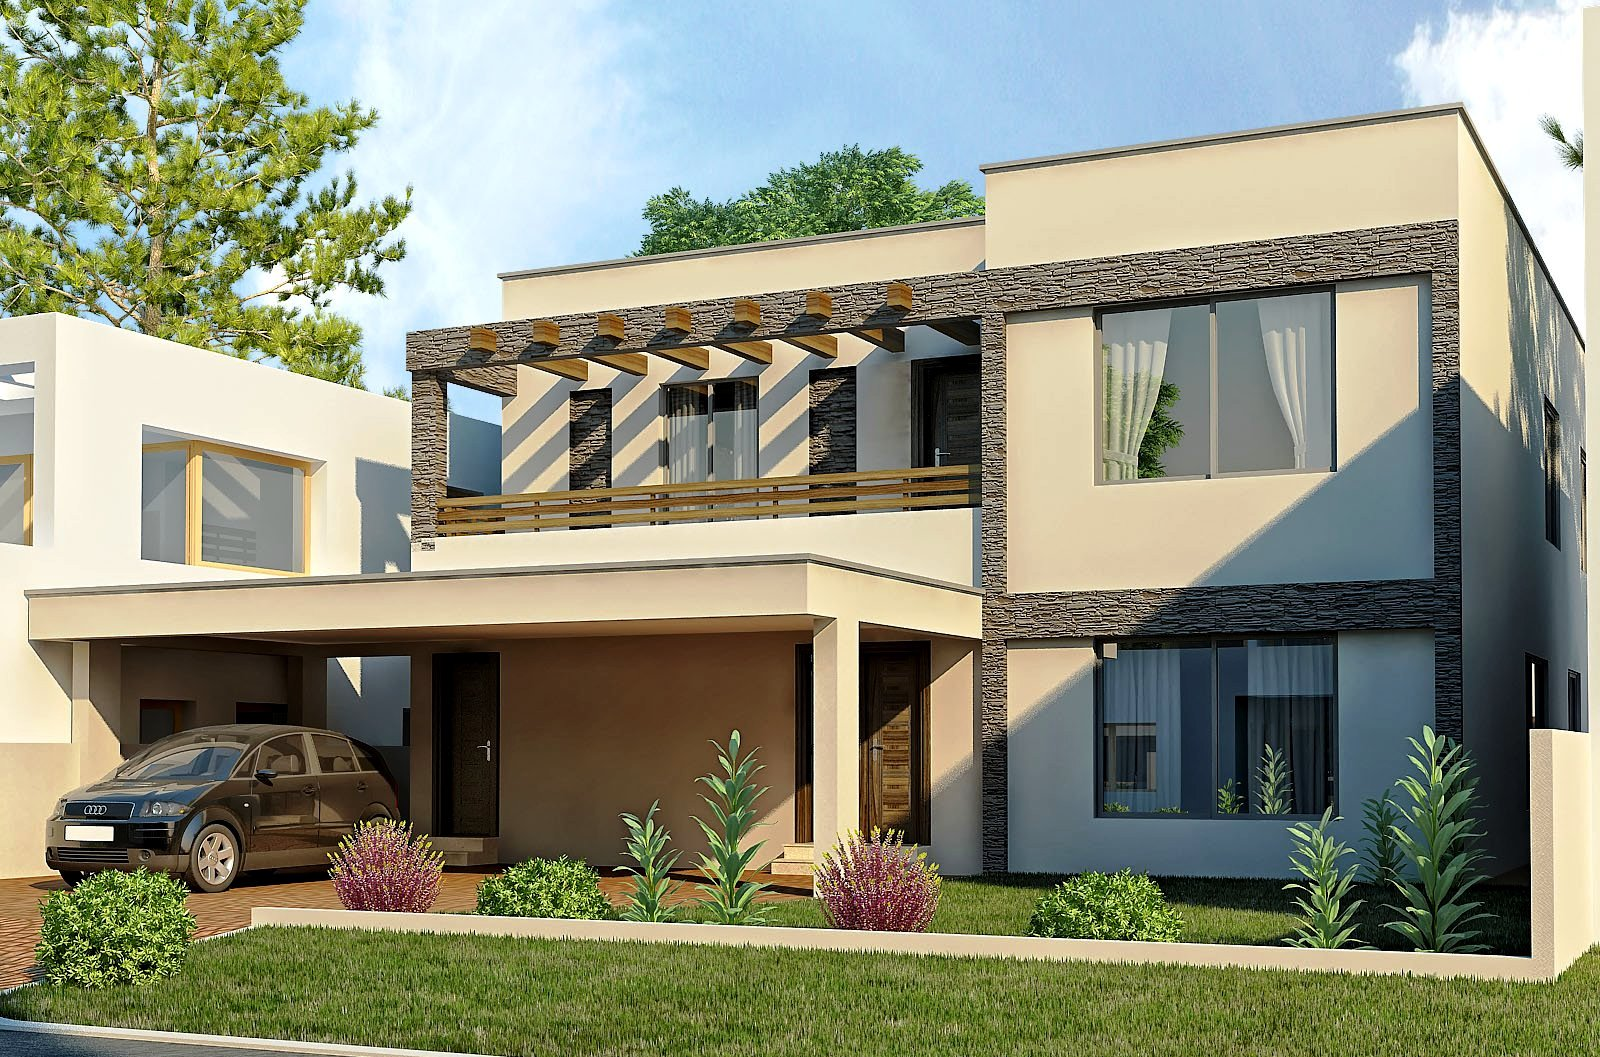 New home designs latest modern homes exterior designs views for House plans with photos of interior and exterior